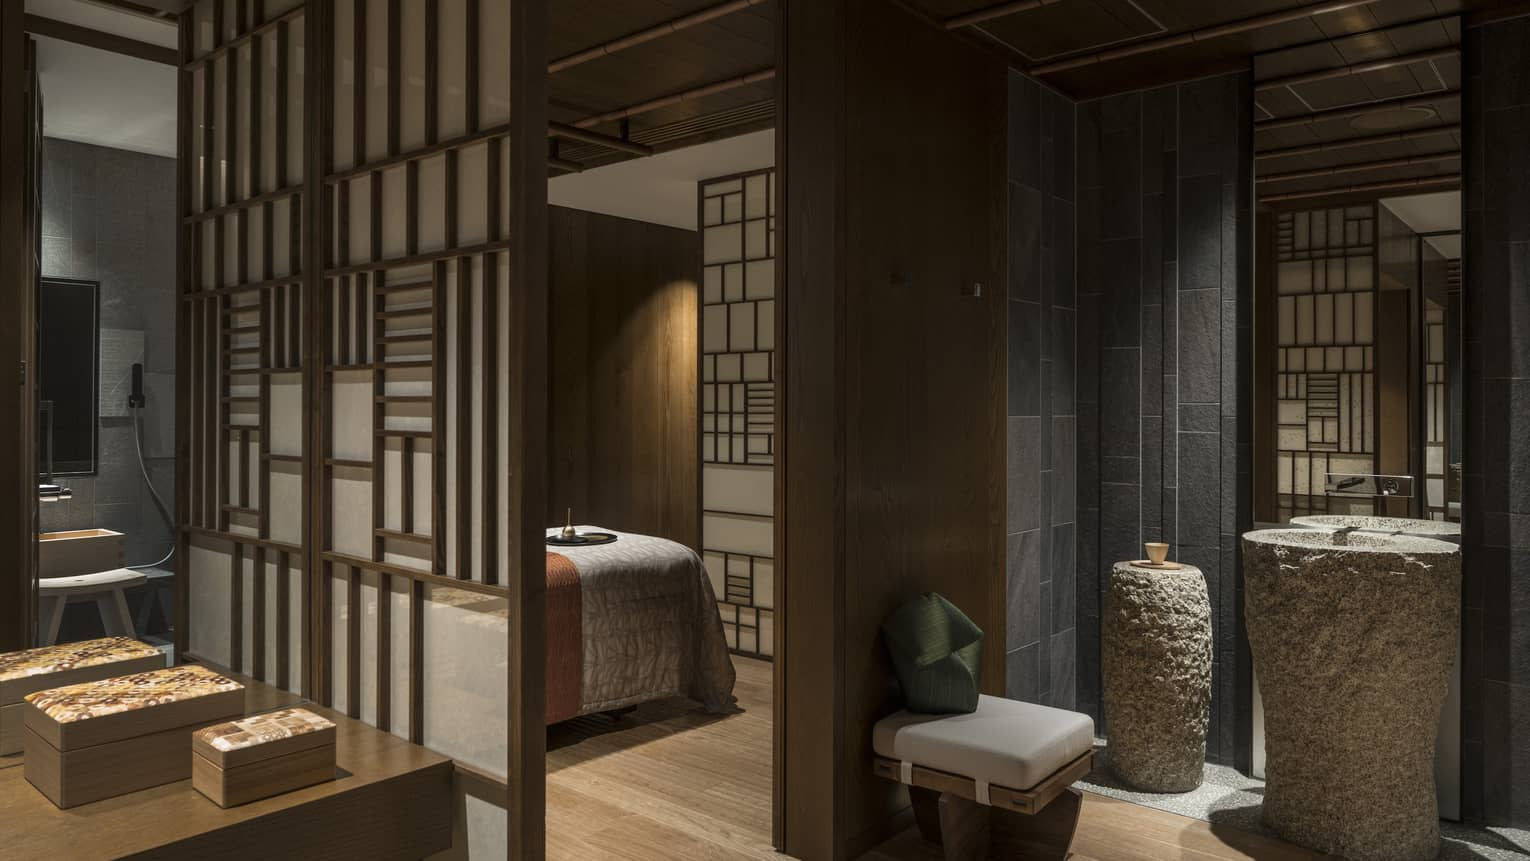 Spa treatment rooms behind screens, large stone vases